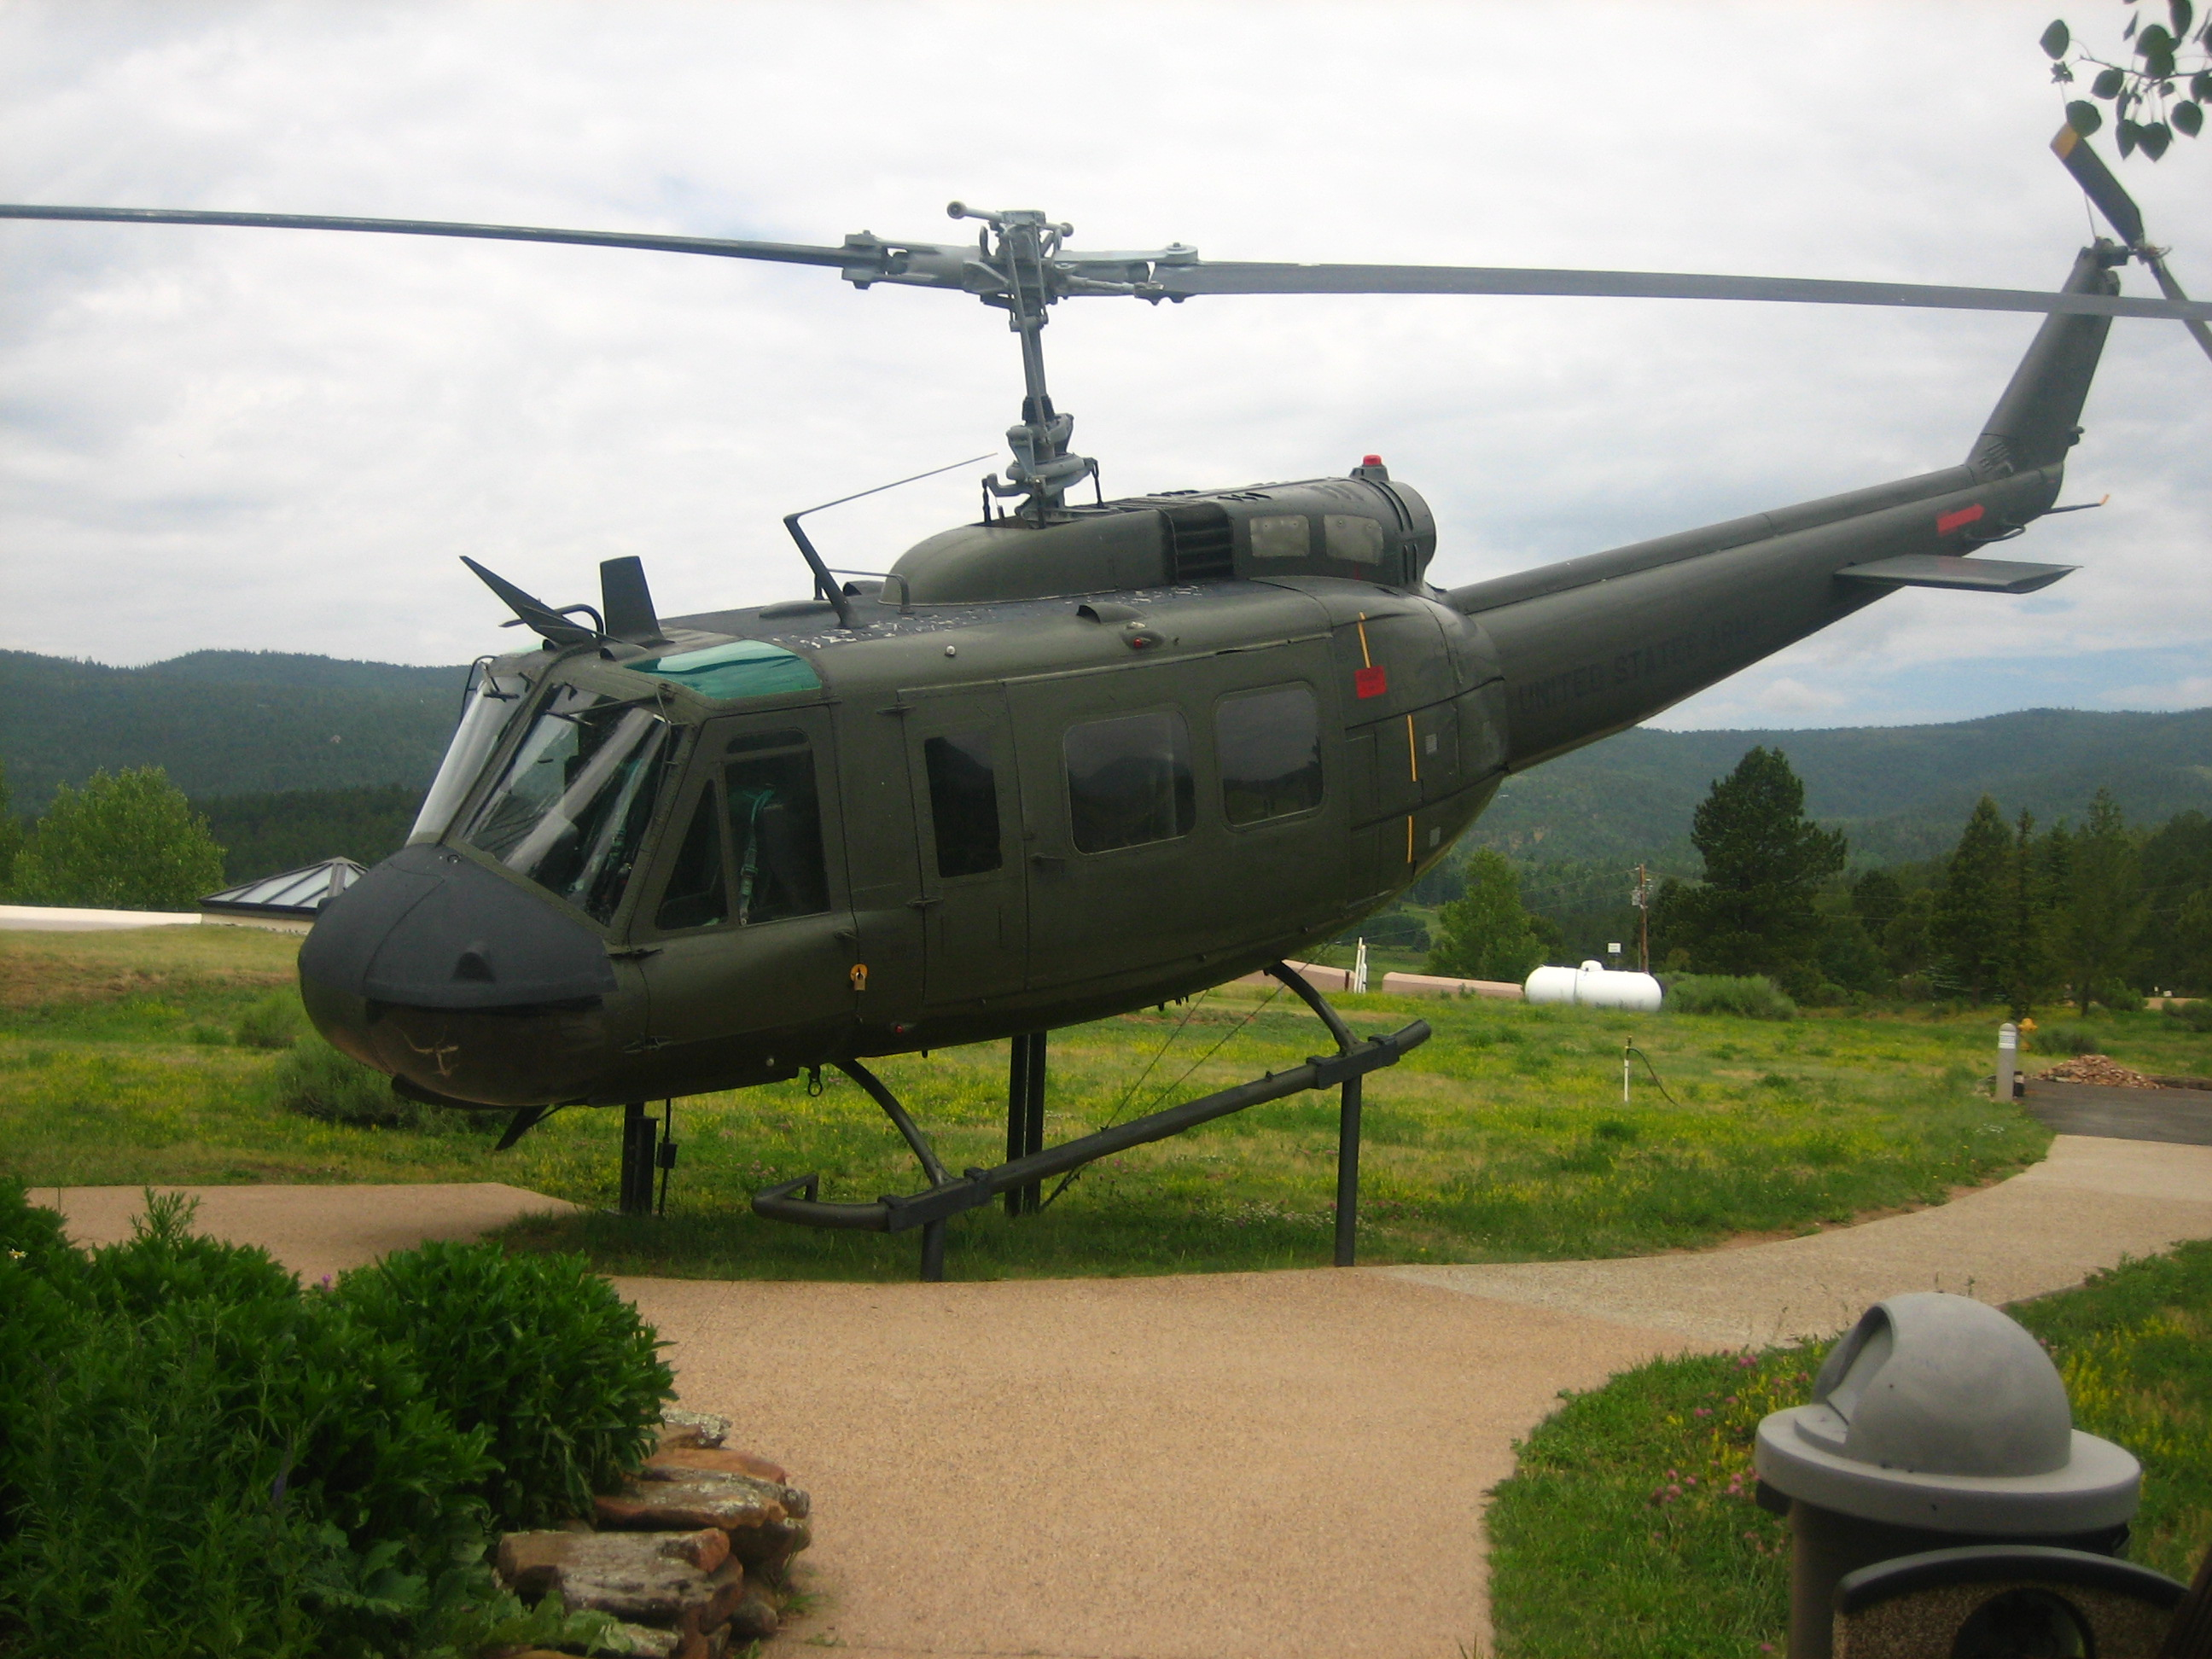 Huey Helicopter For Sale >> File:Huey helicopter IMG 0435.JPG - Wikipedia